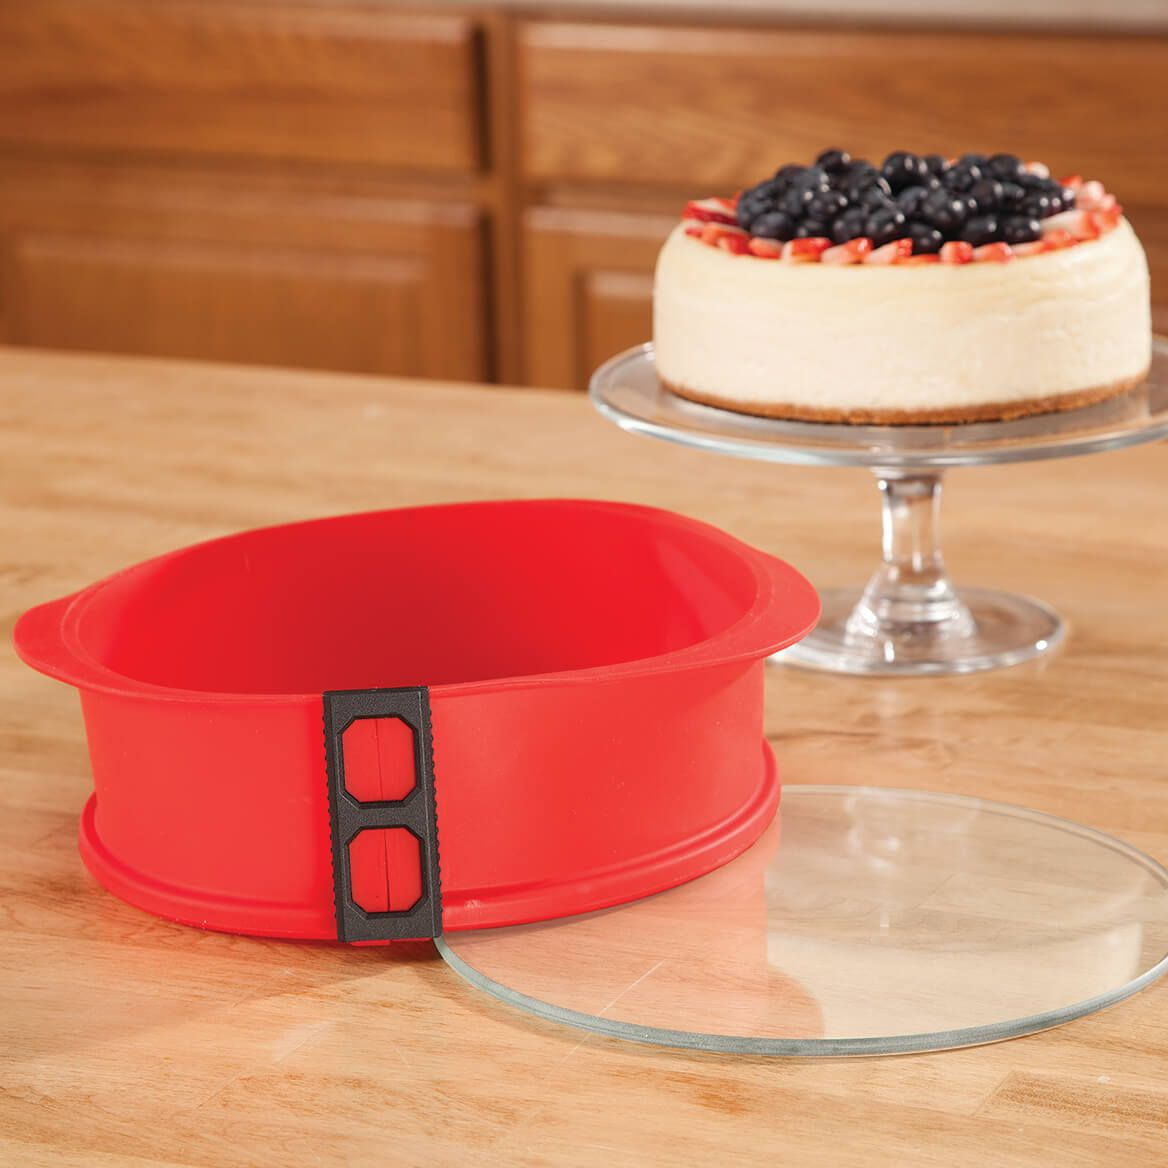 Bake cool and serve with one welldesigned silicone